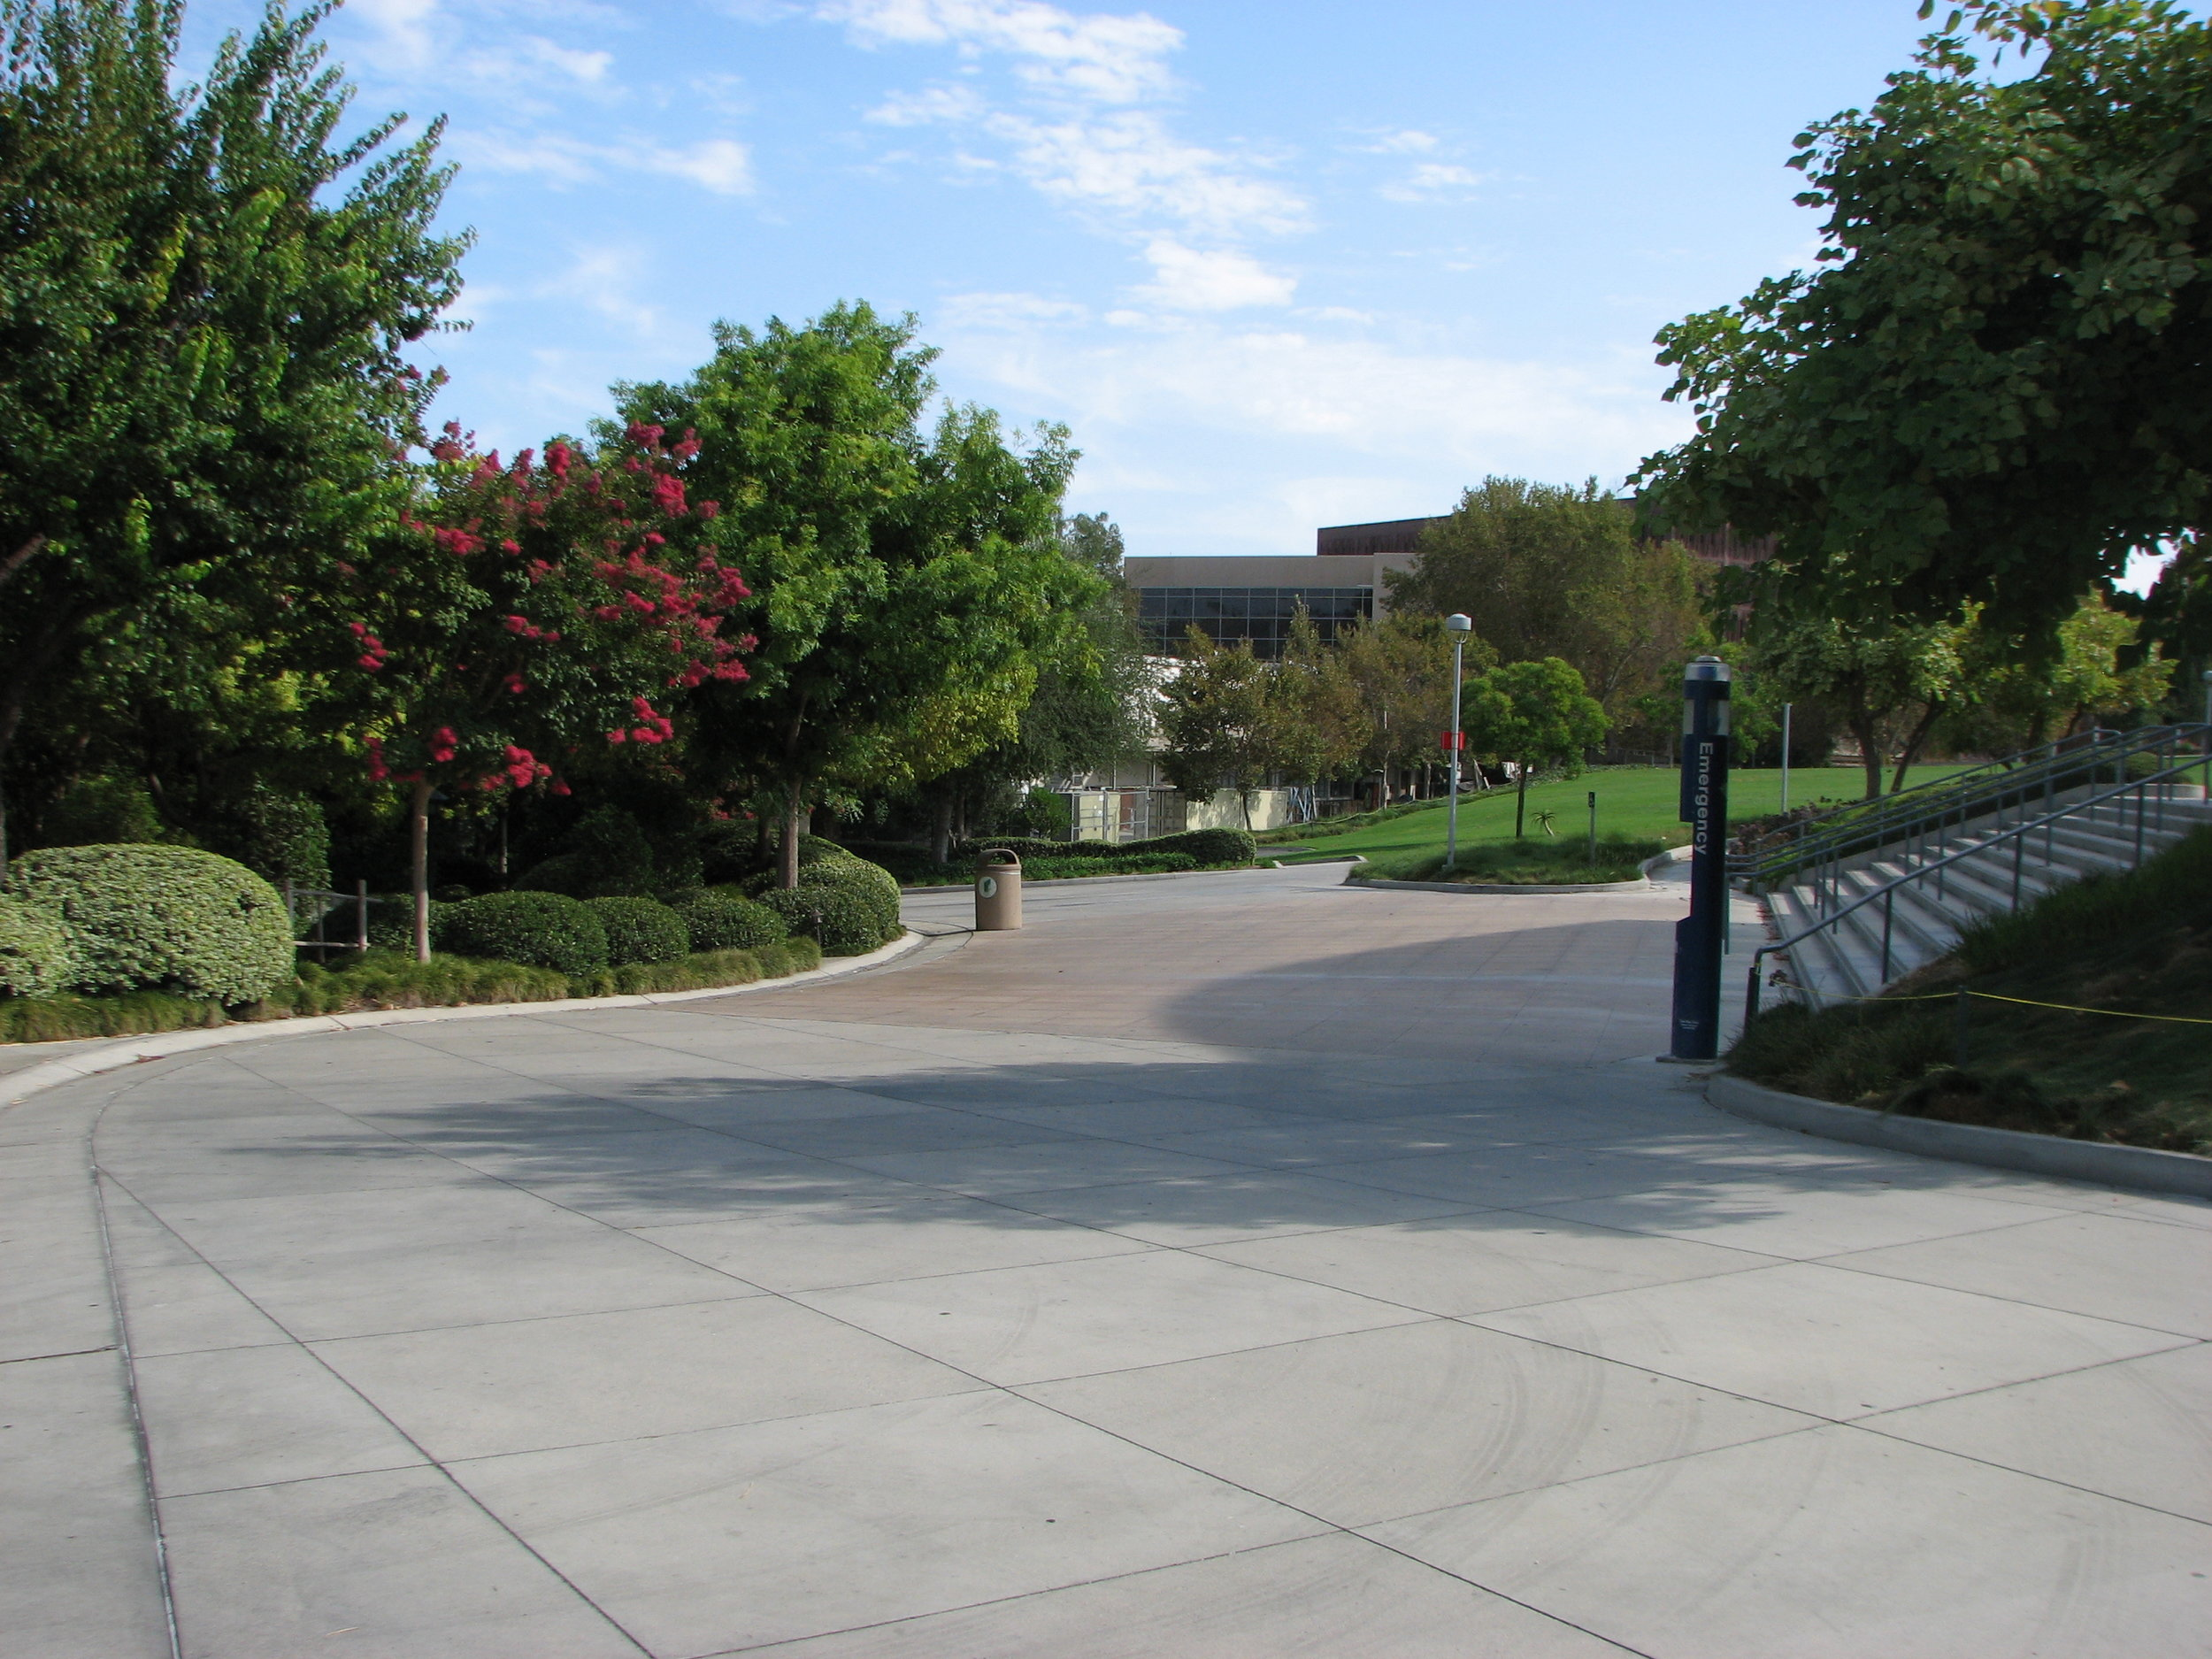 Cal State Polytechnic University Pomona - Redesign of pedestrian walkways and parking lot areas on the Cal-Poly campus for ADA compliance